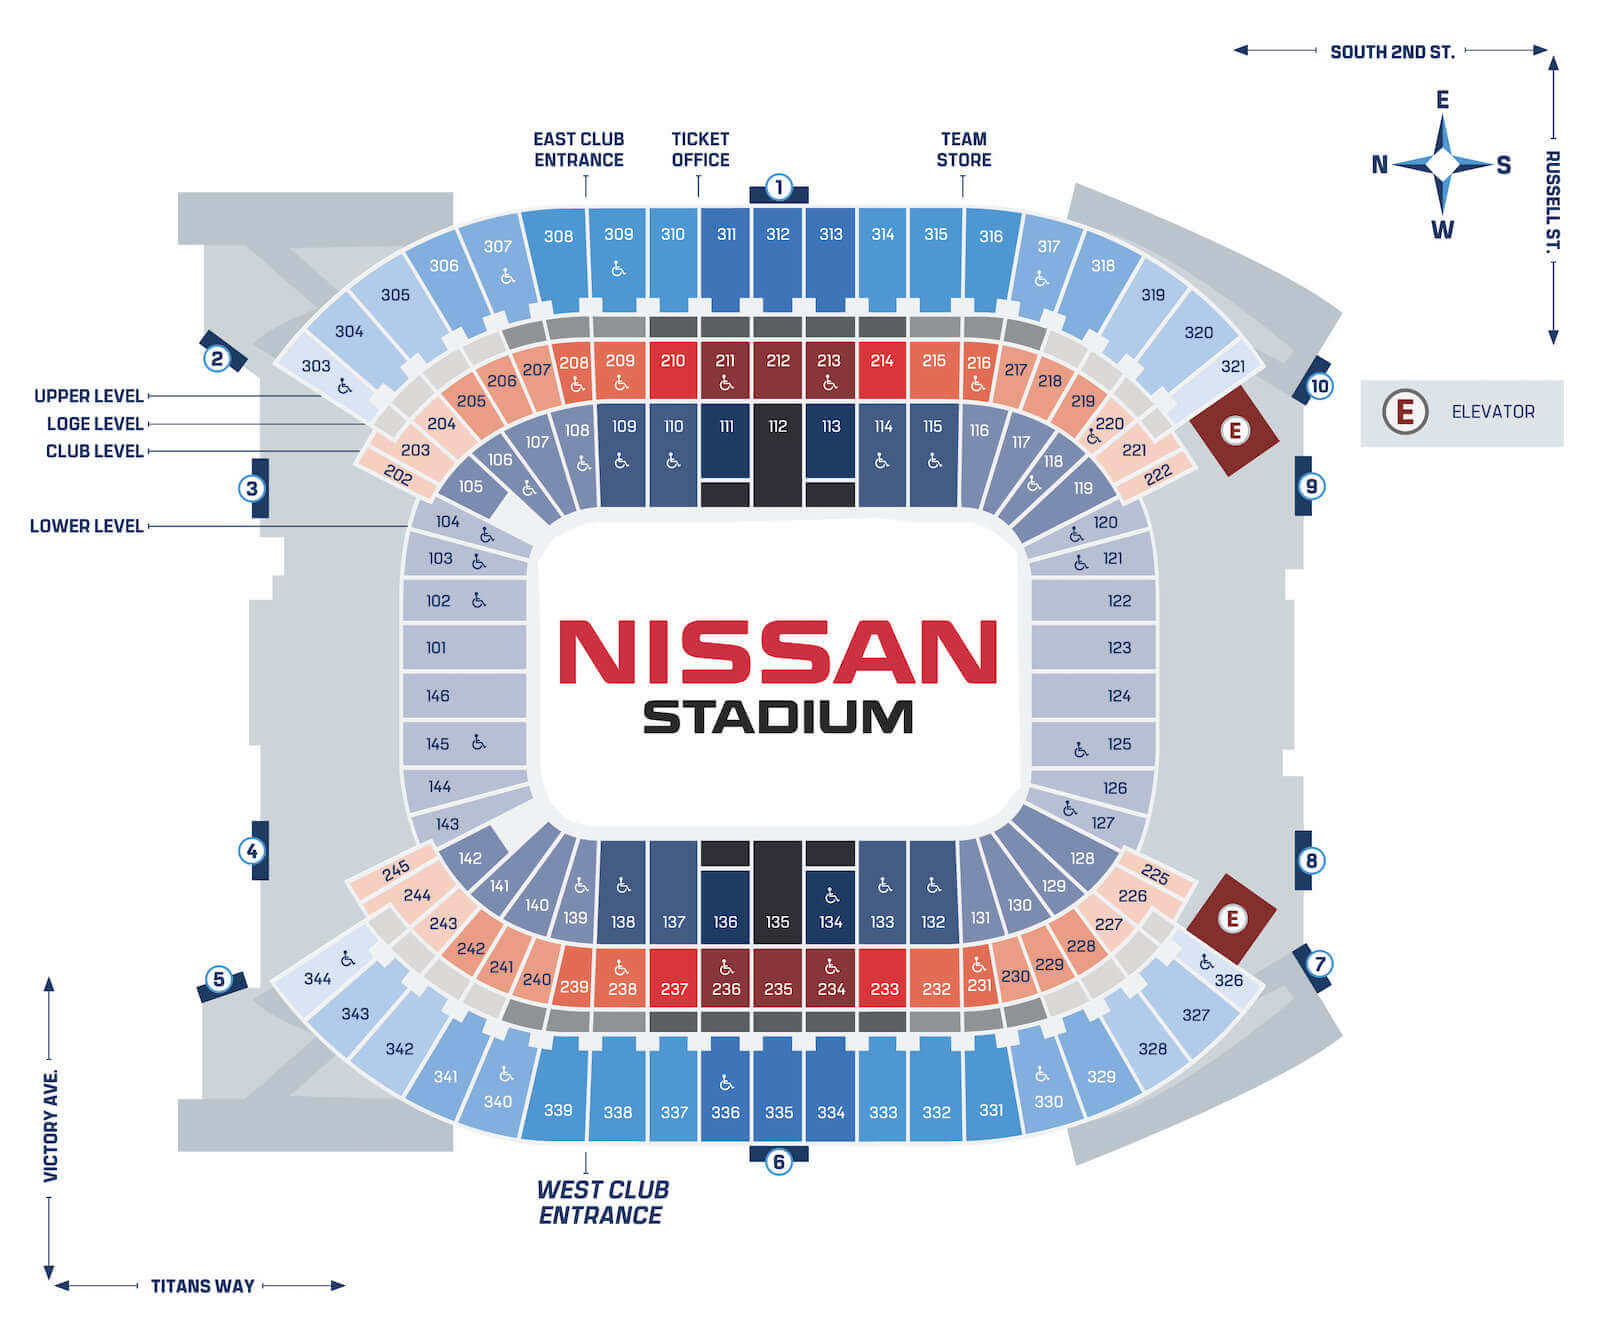 Nissan Stadium Seating Map